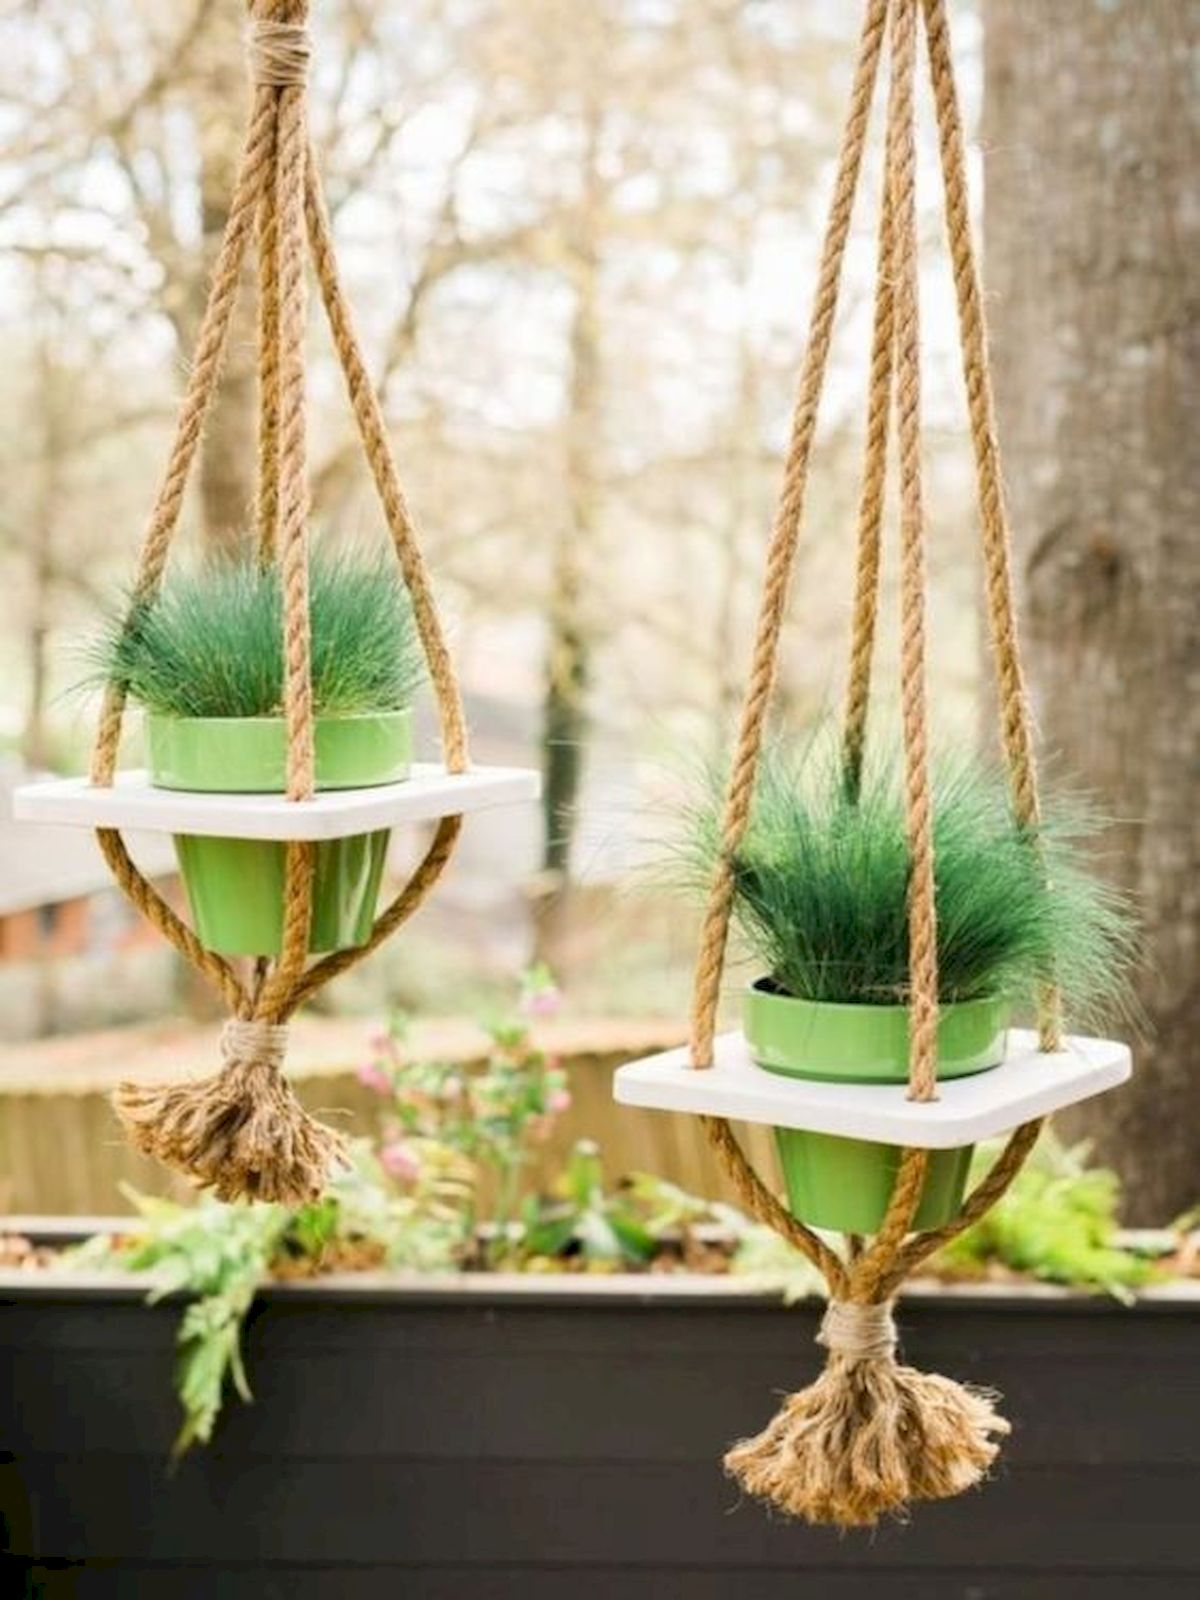 50 Awesome Modern Backyard Garden Design Ideas With Hanging Plants (2)